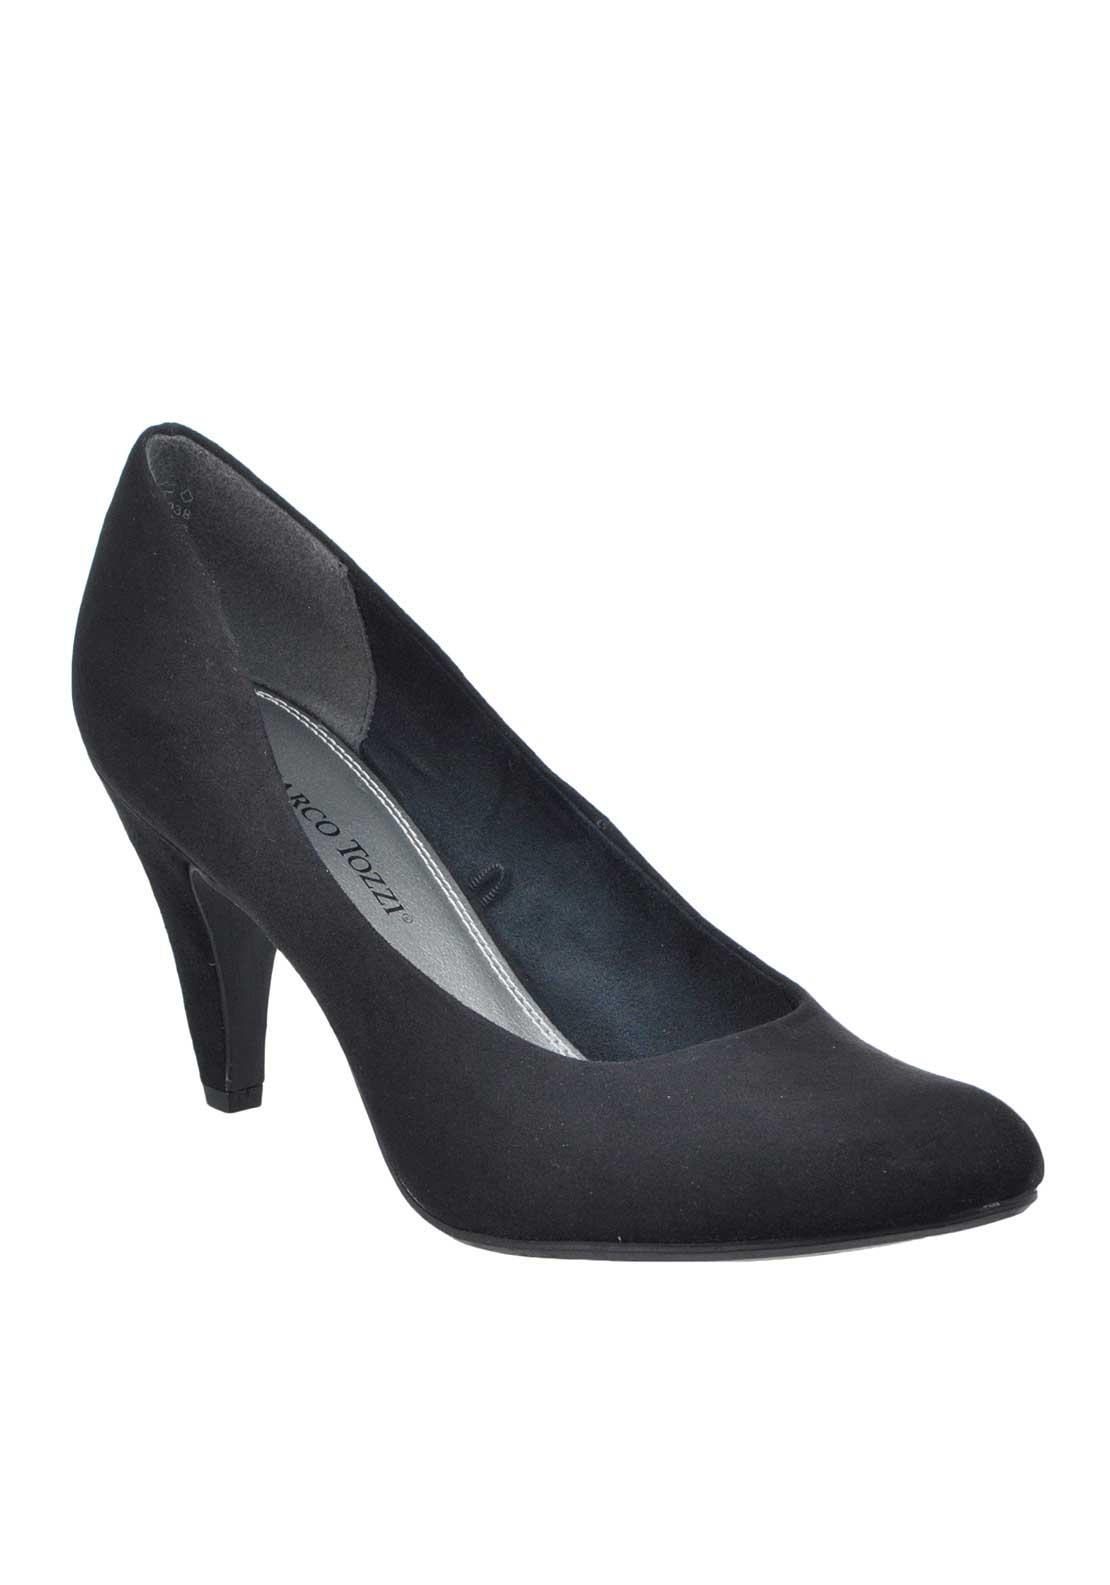 Marco Tozzi Faux Suede Pointed Toe Heeled Court Shoes, Black